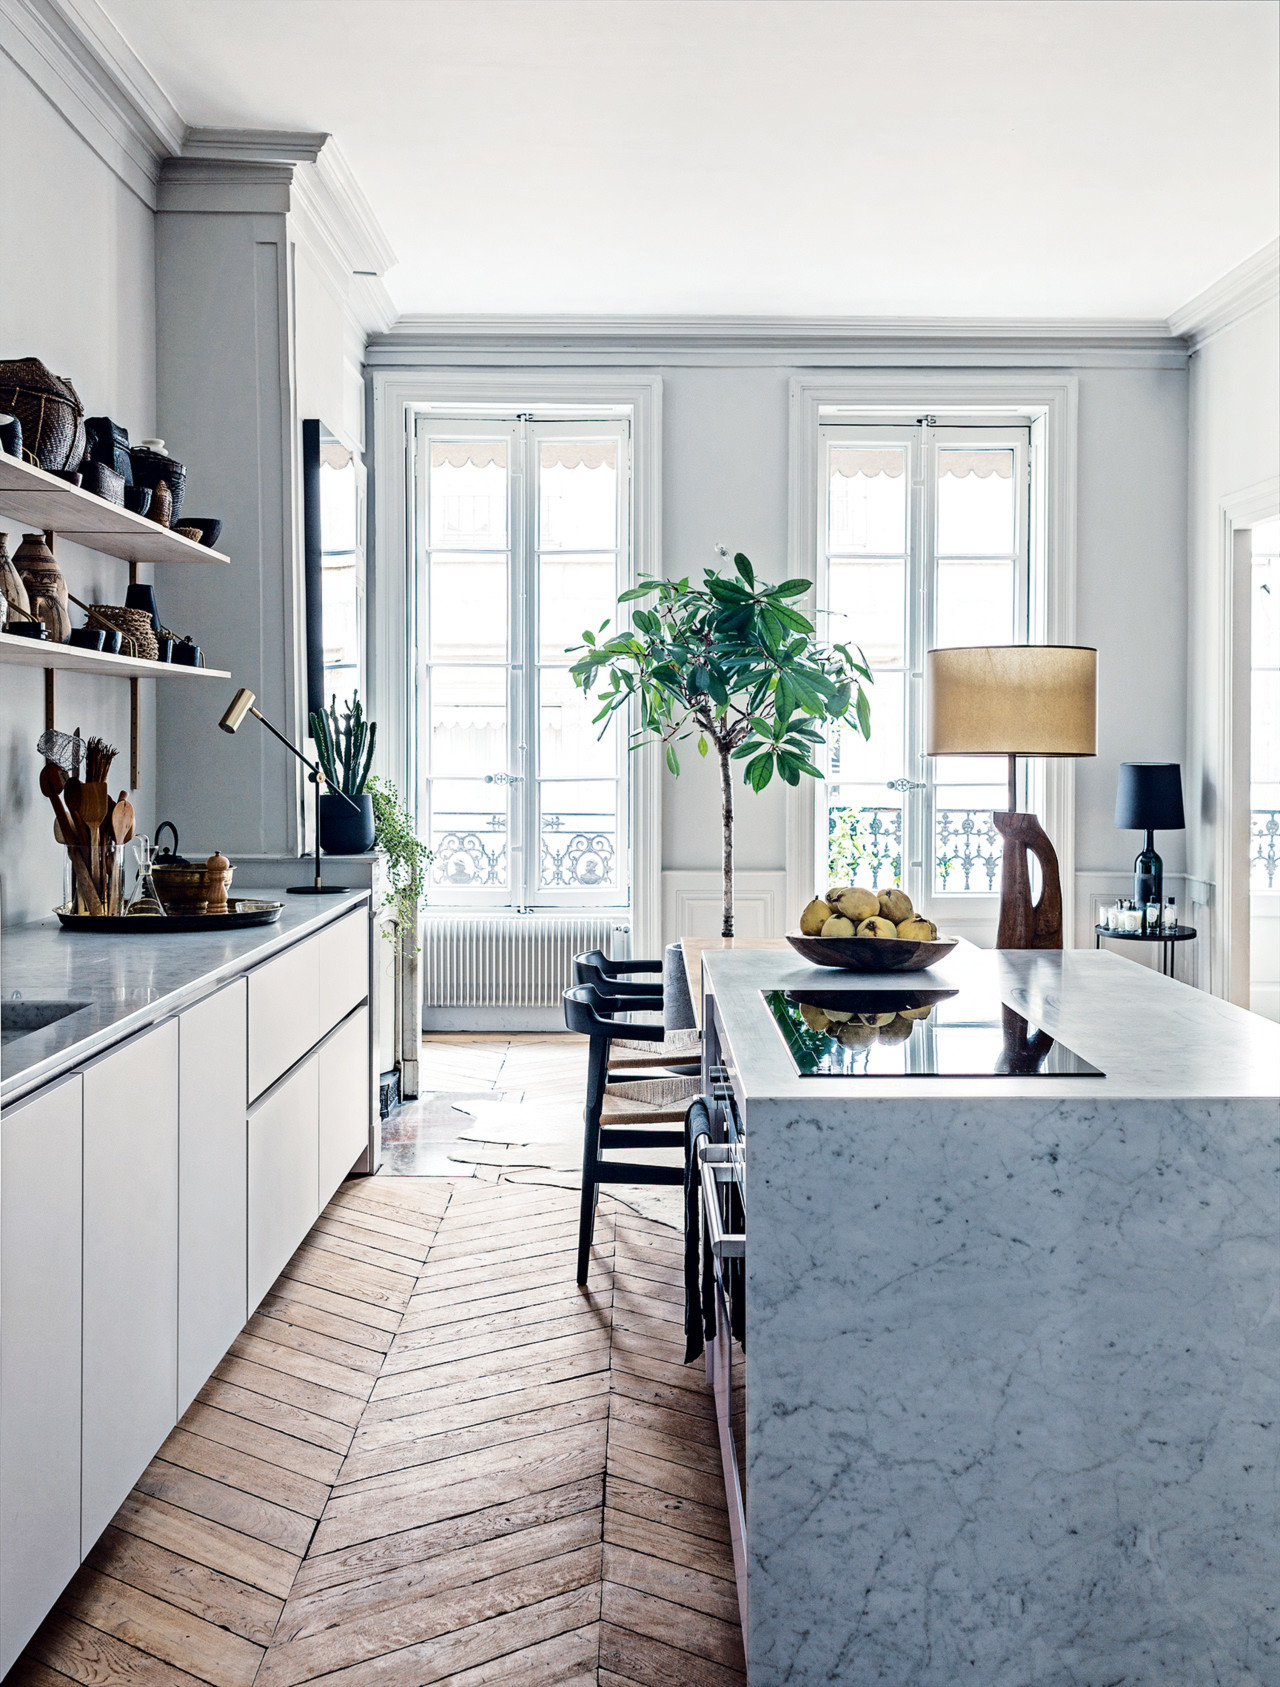 Kookeiland inspiratie homease for Parisian style kitchen ideas